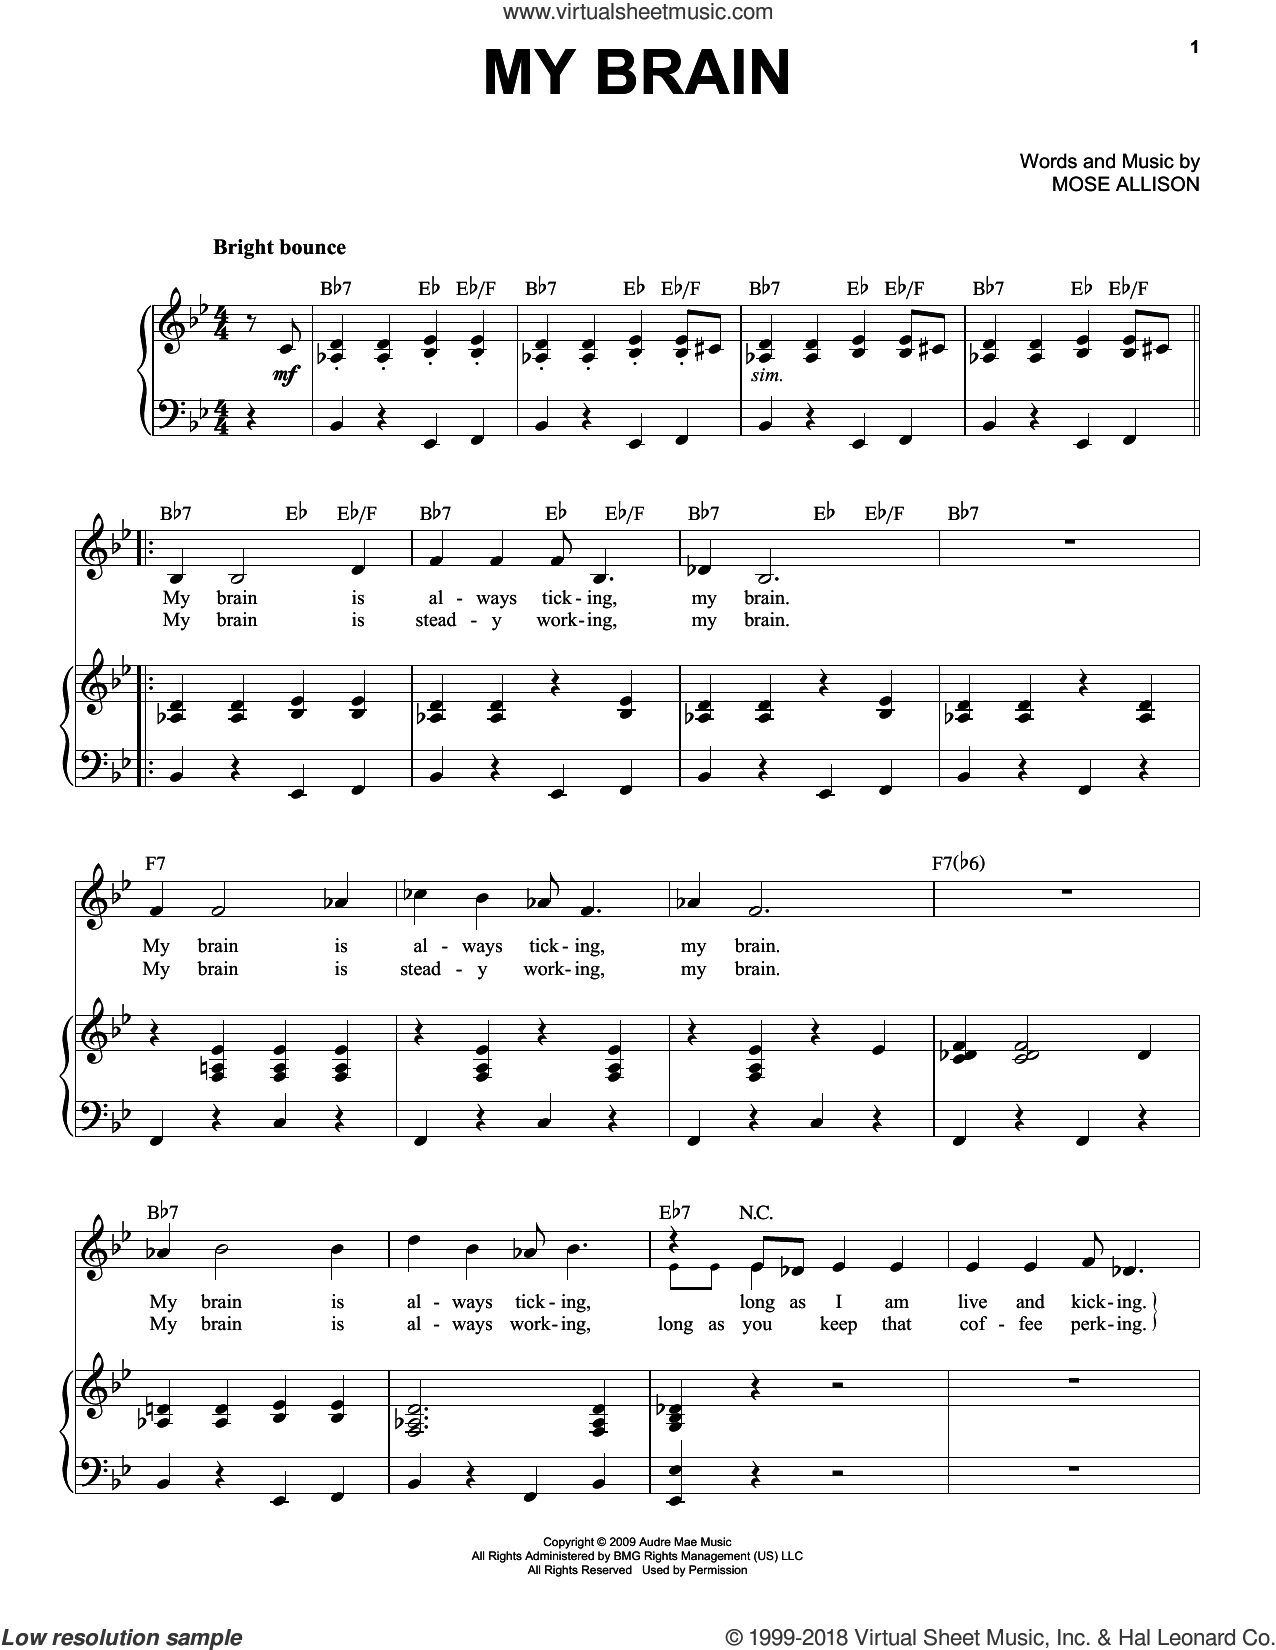 My Brain sheet music for voice and piano by Mose Allison, intermediate skill level